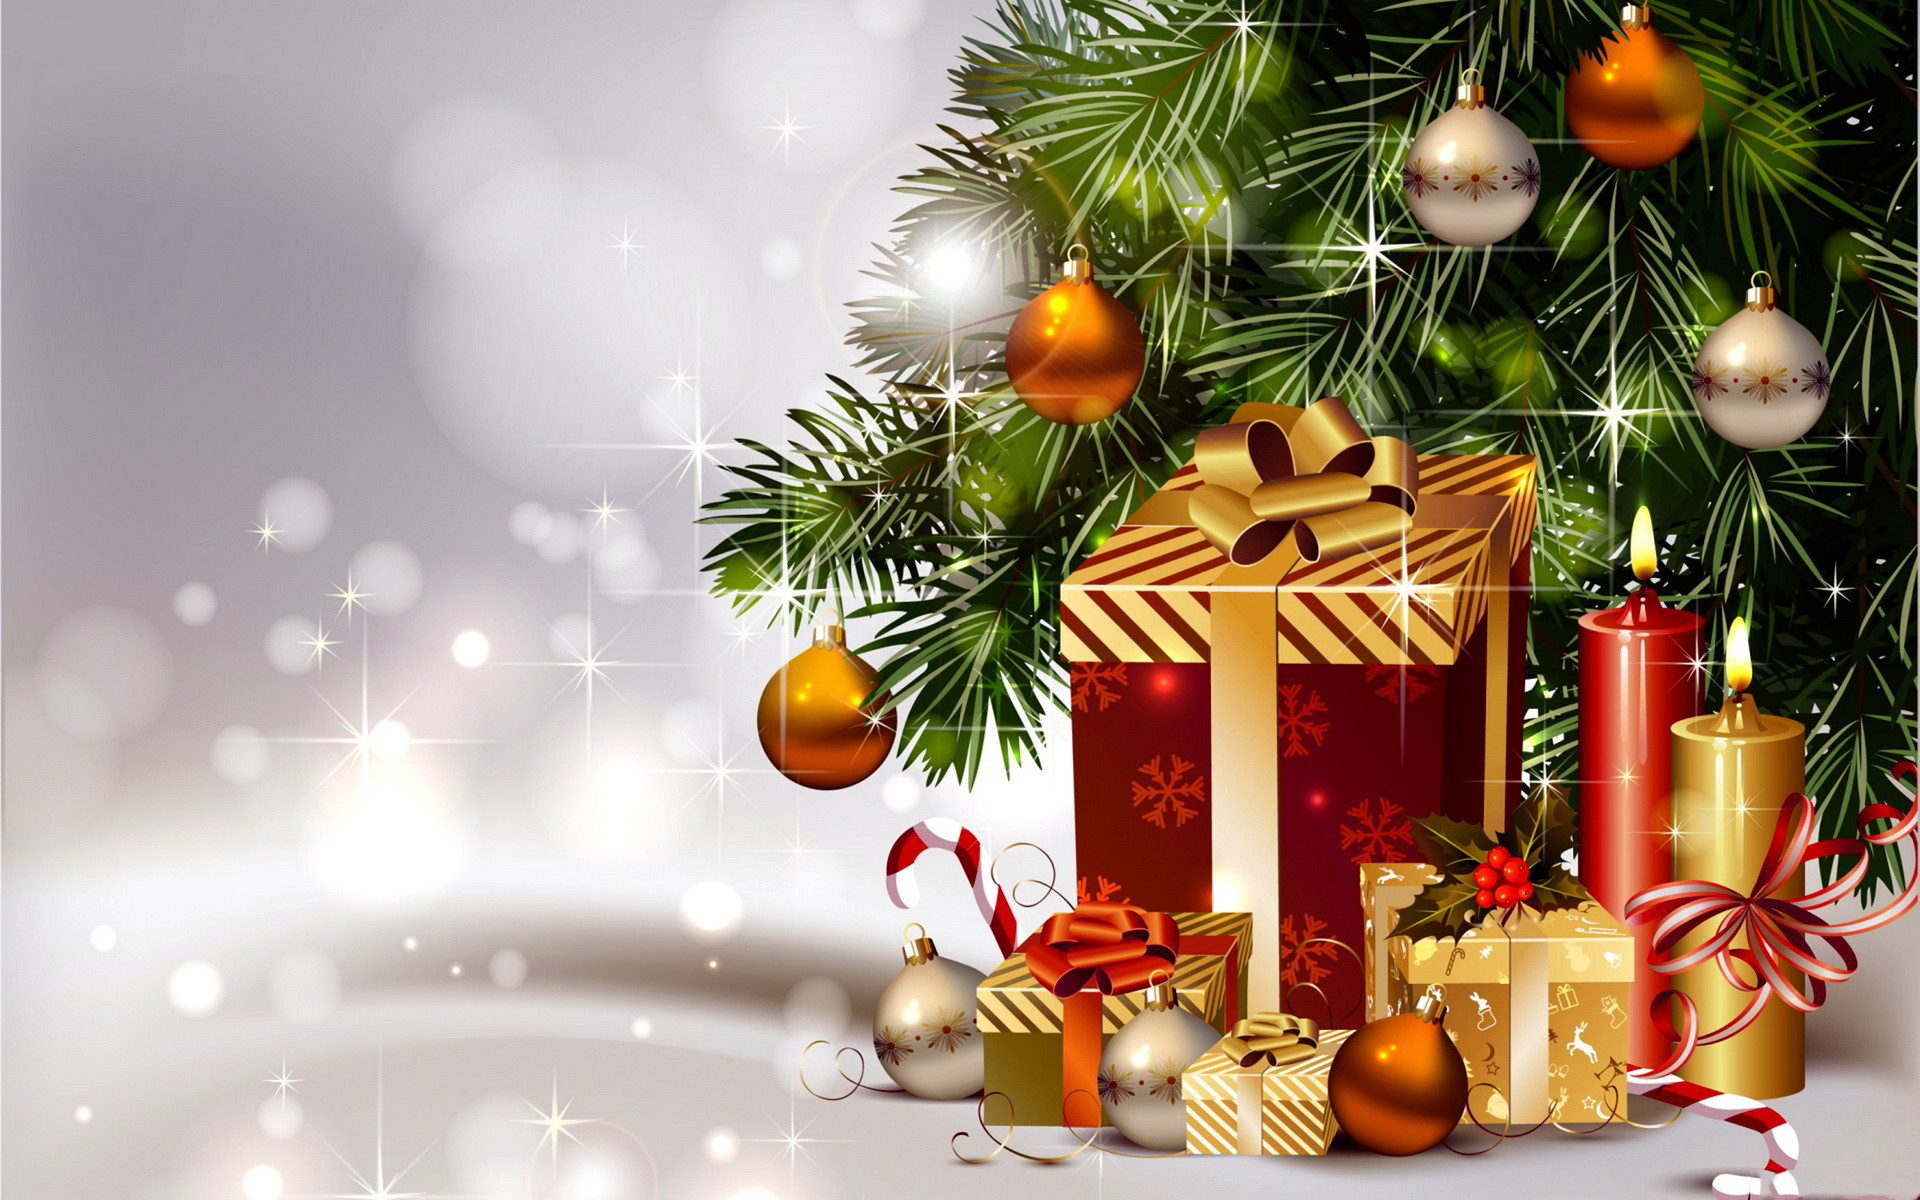 1920x1200 1920x1200 3d christmas wallpapers free download latest 3d christmas wallpapers for computer mobile - What Is The Definition Of Christmas